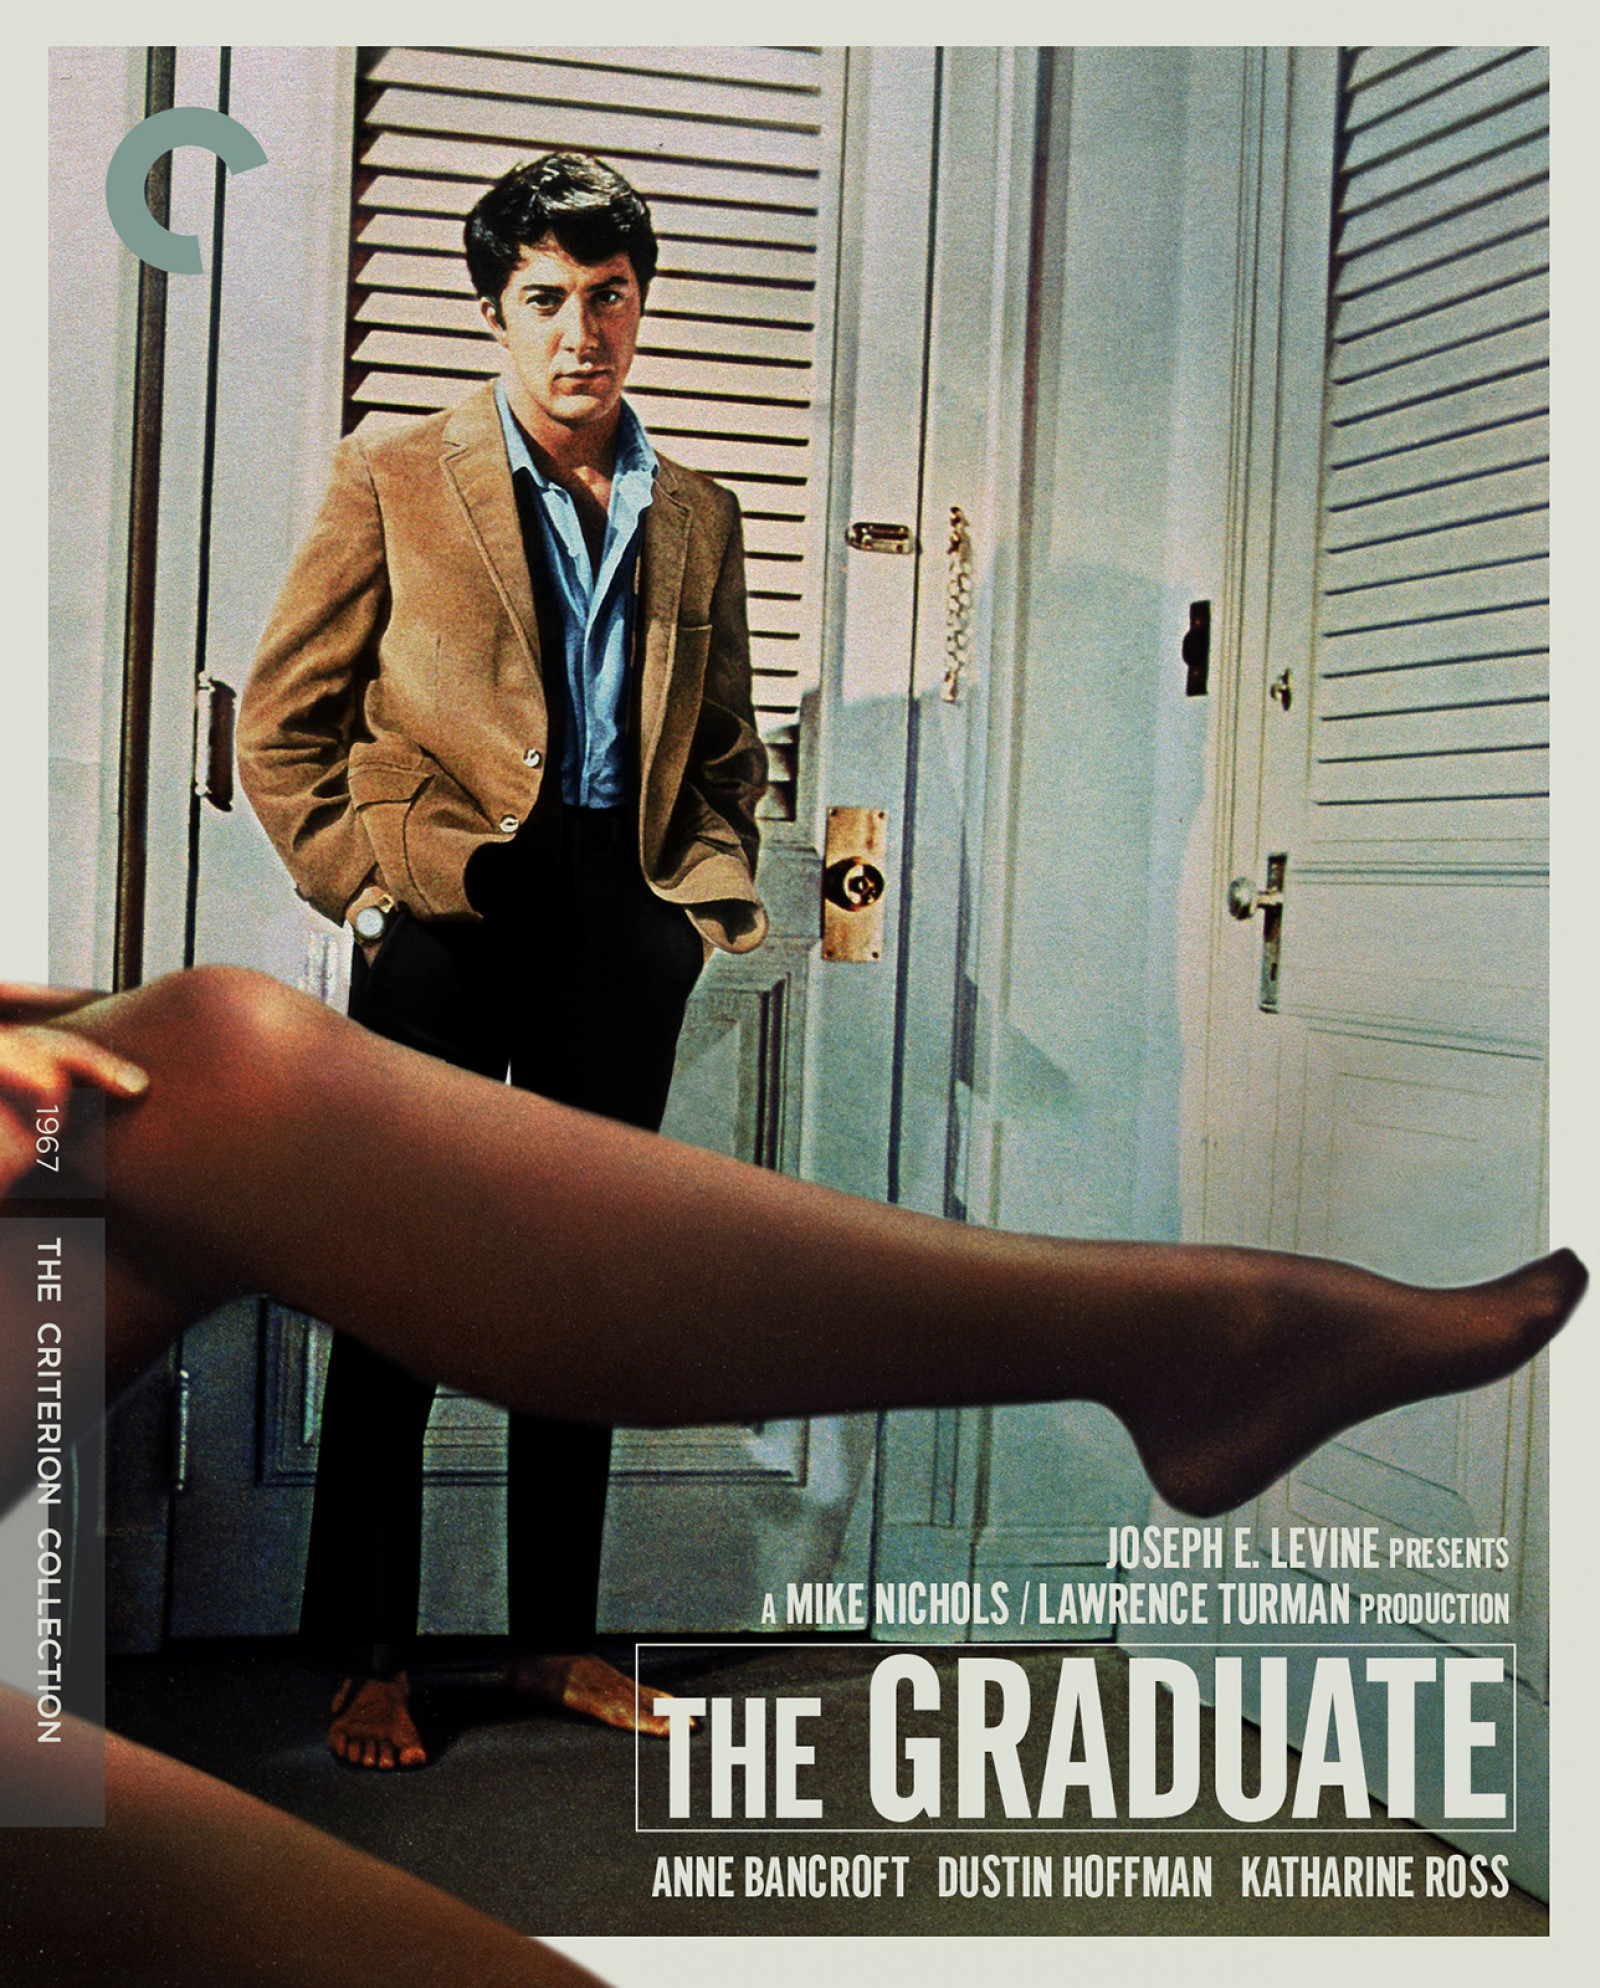 The Graduate (1967) The Criterion Collection Blu-ray